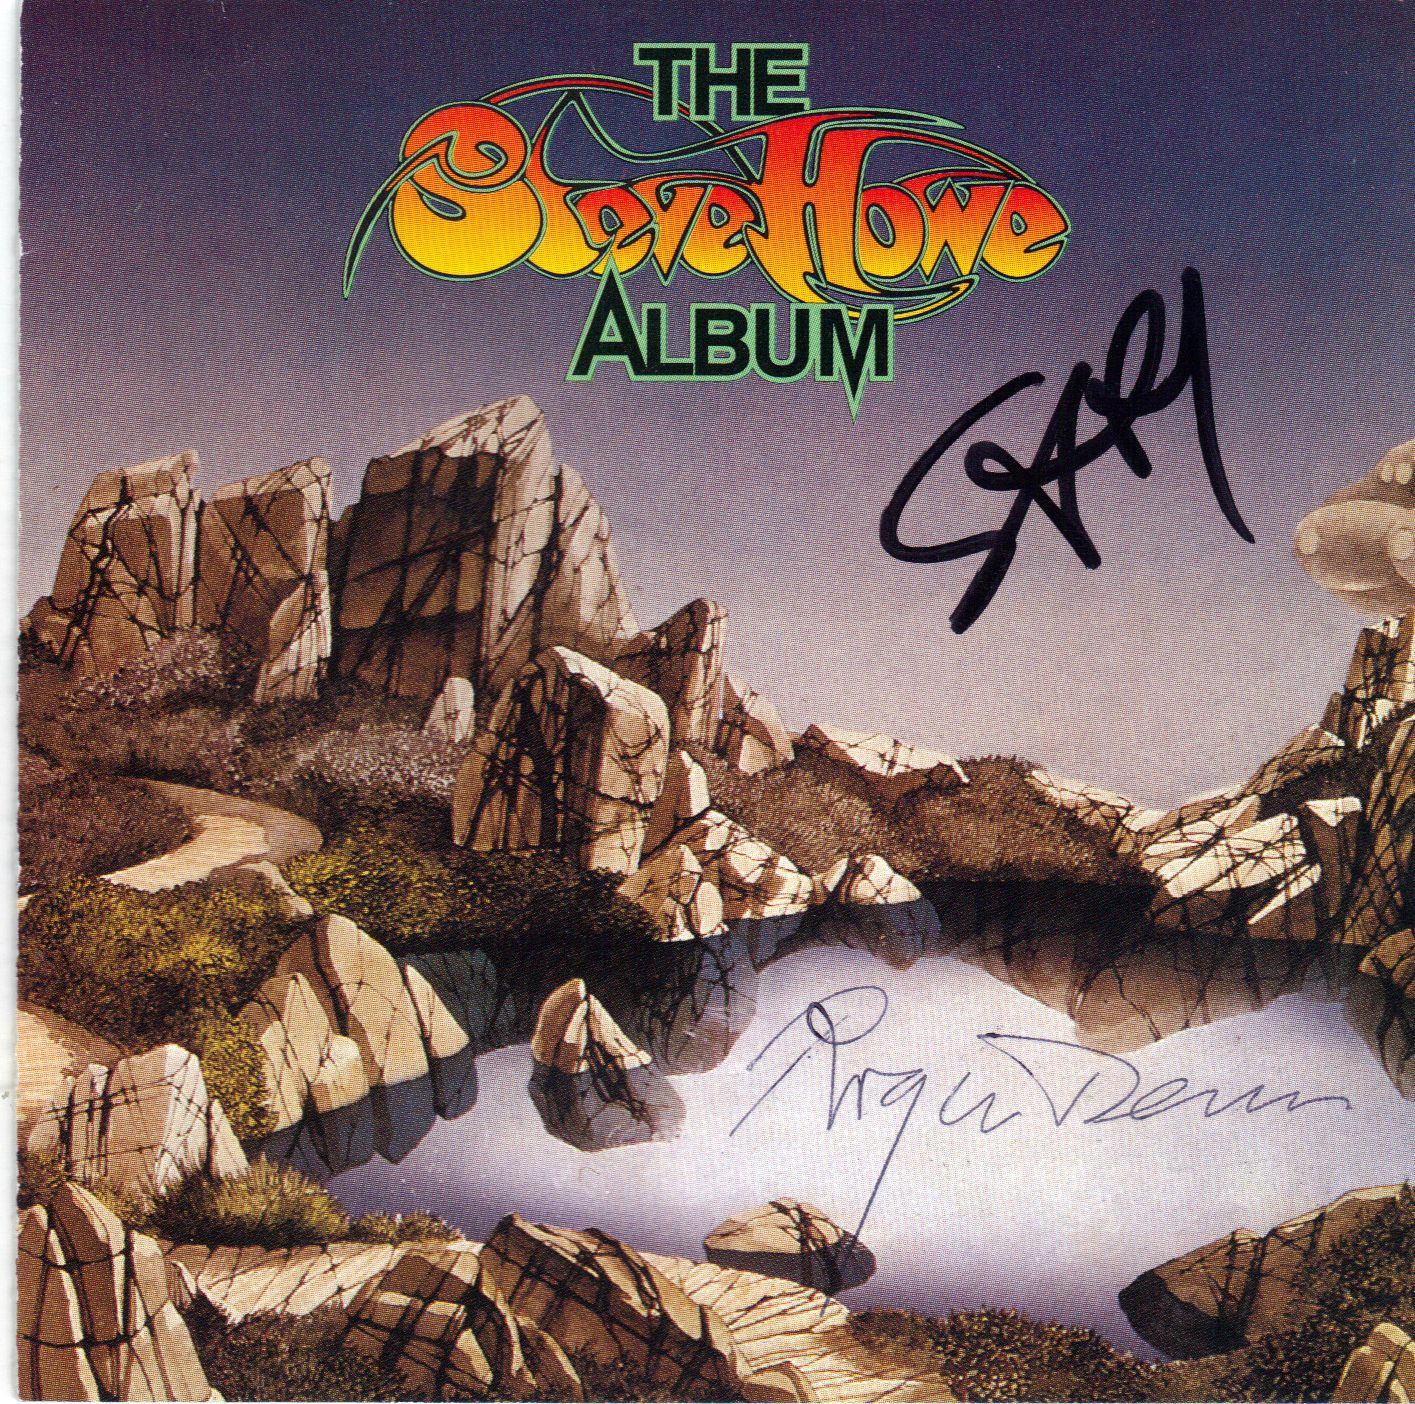 The Steve Howe Album – Part 2 – 281